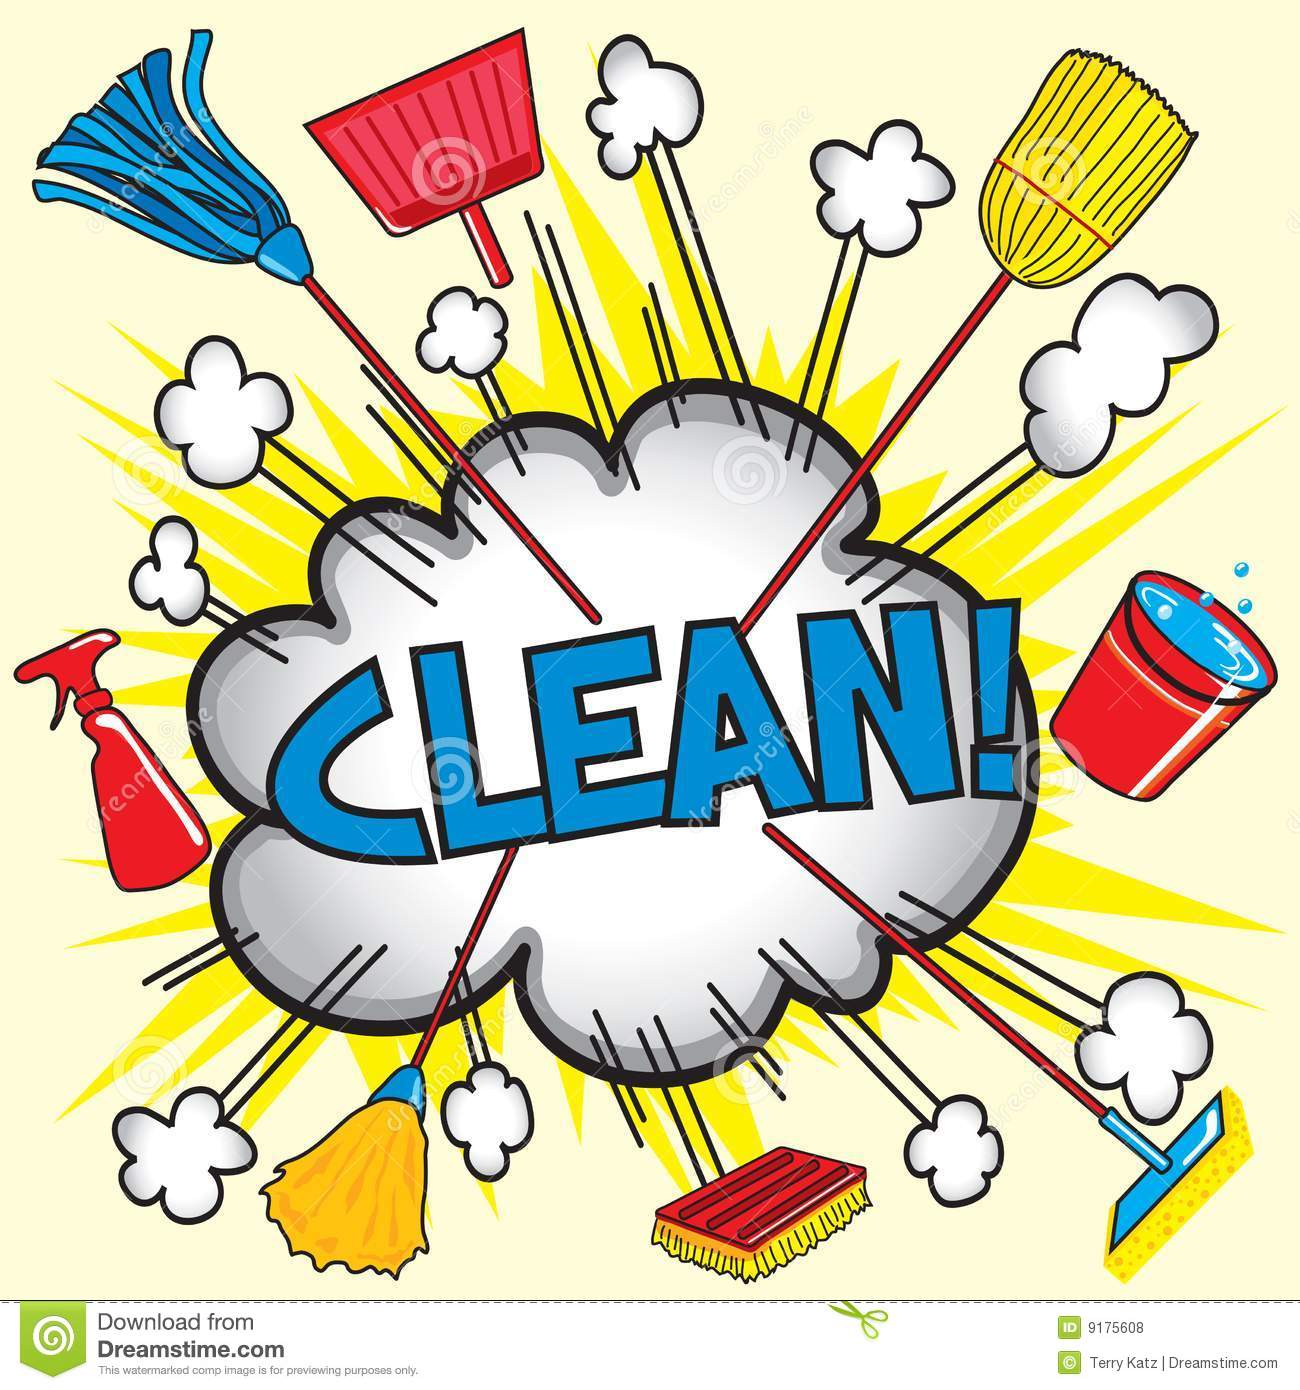 Clean! Royalty Free Stock Photos